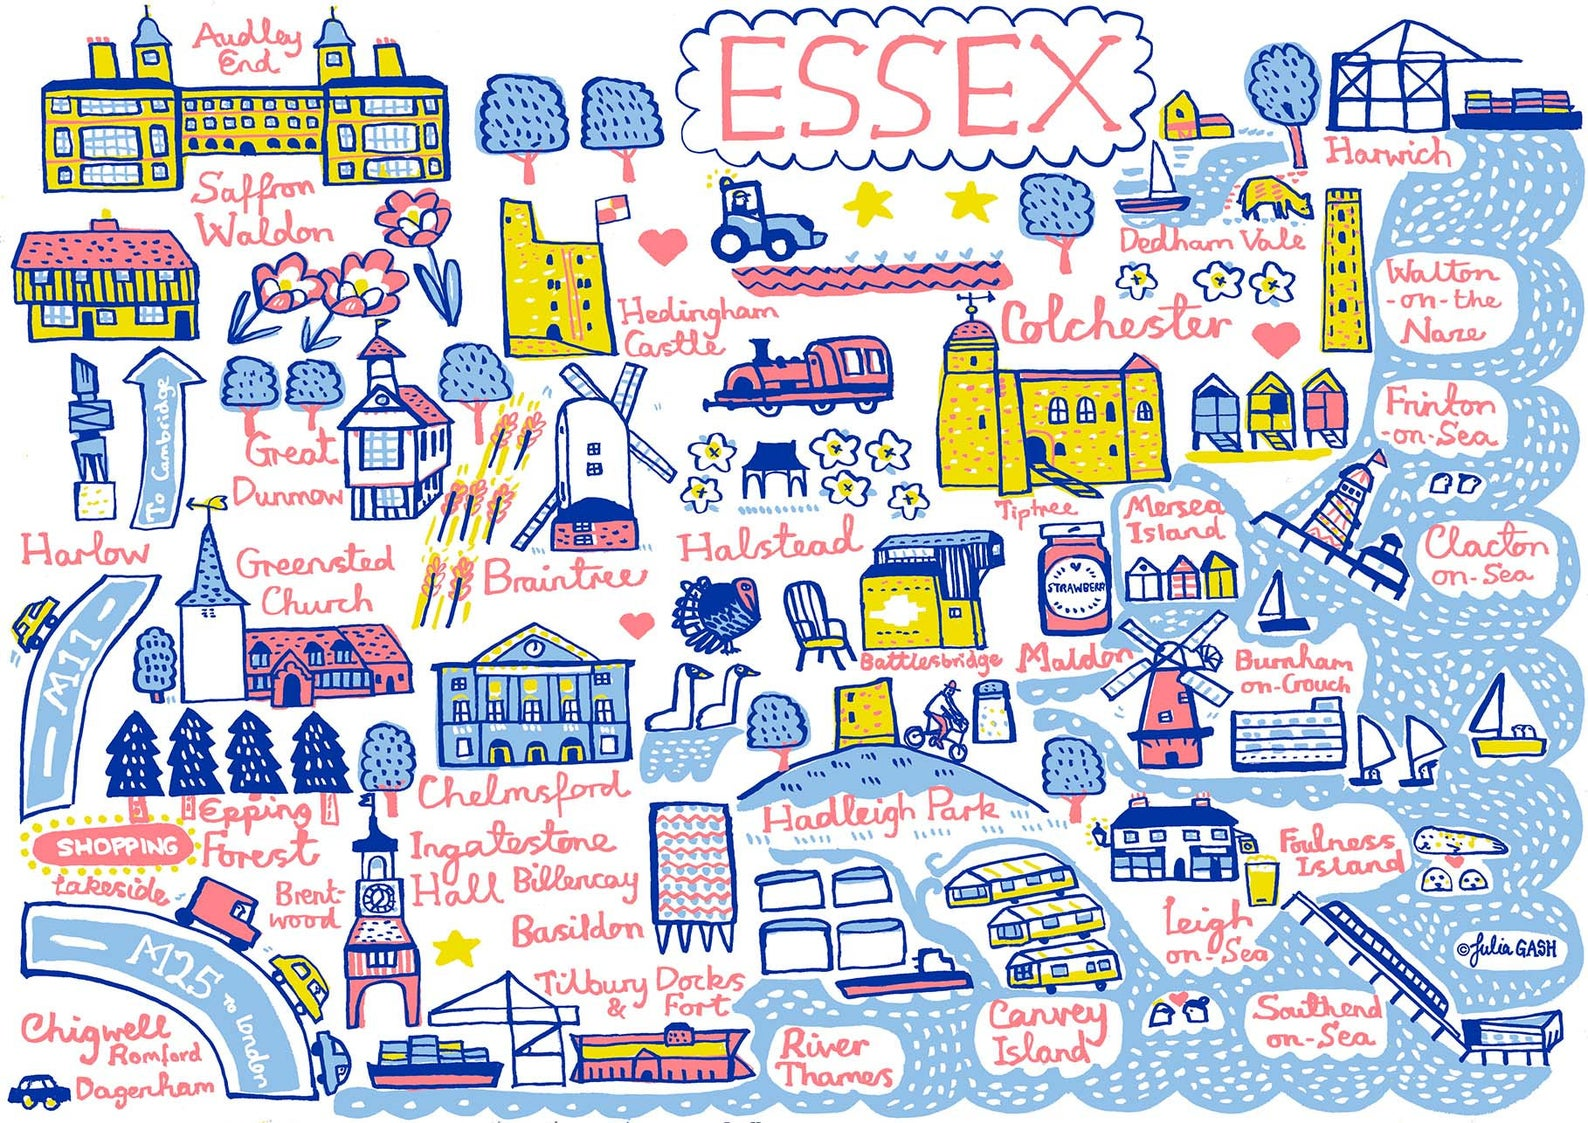 Essex Art Print - Julia Gash